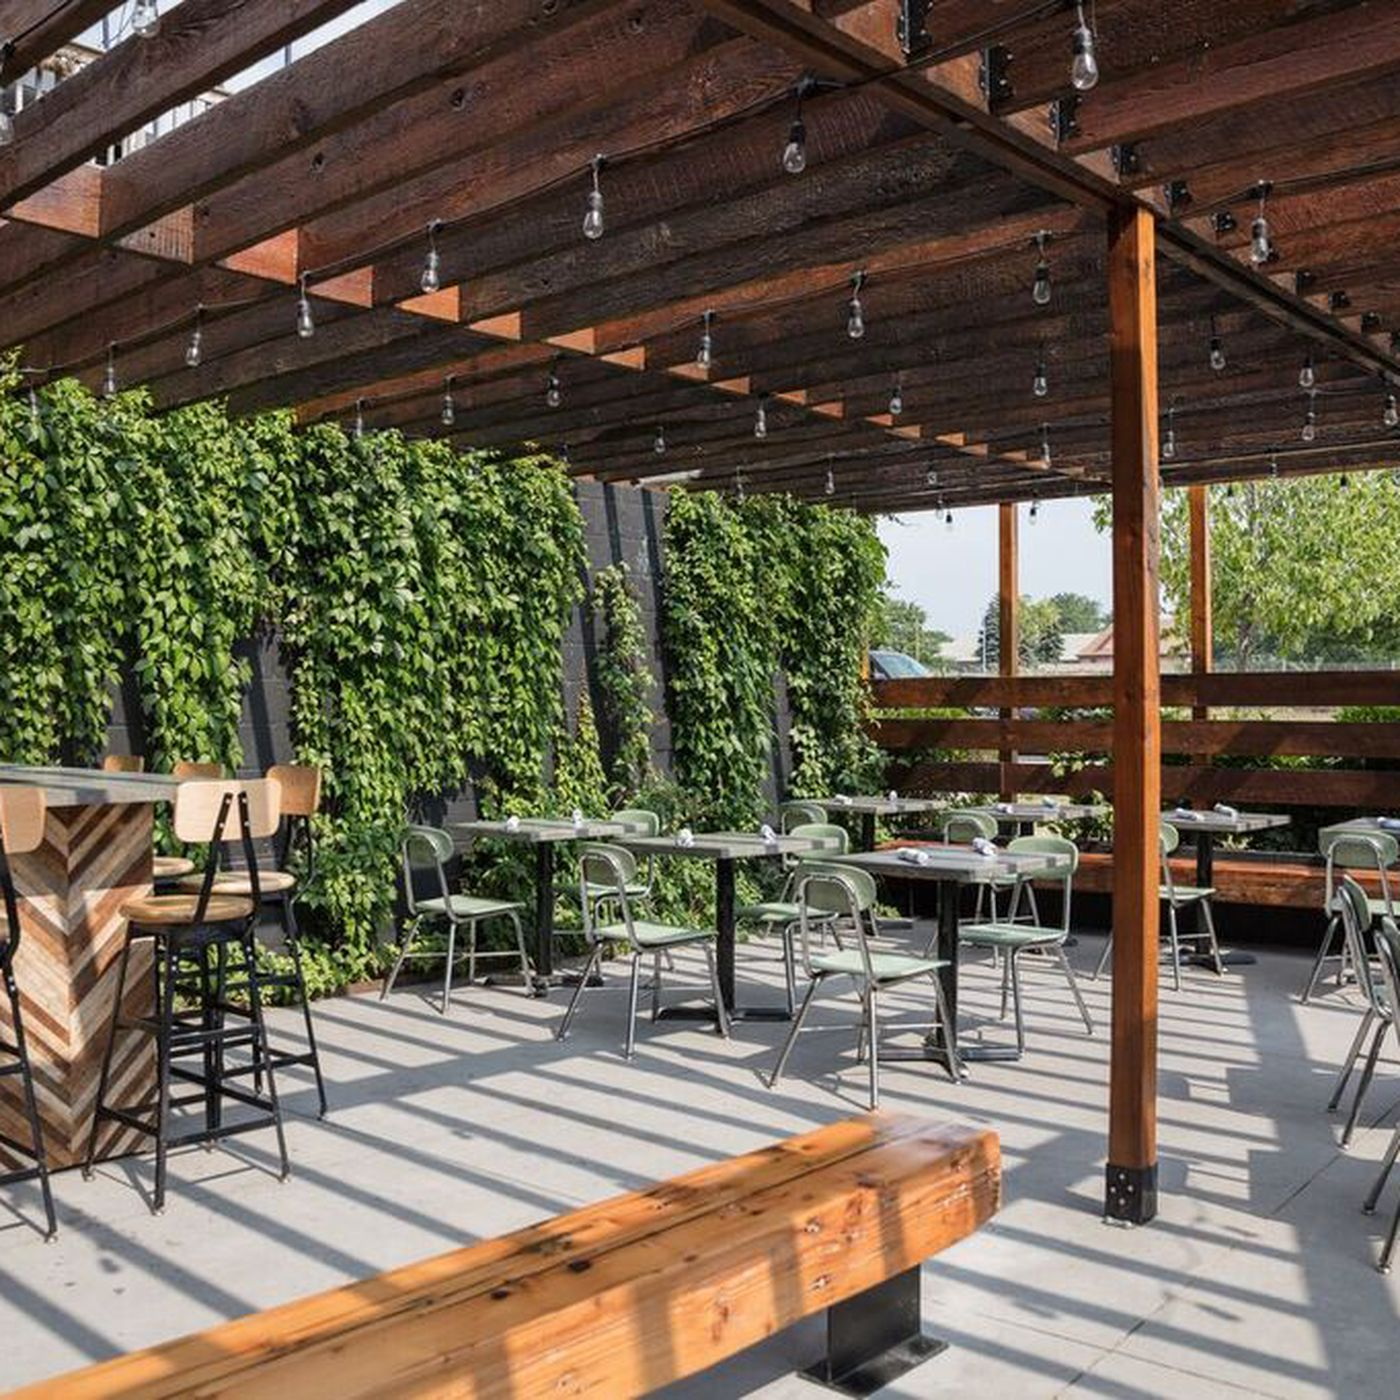 Gold Cash Gold Spruces Up Patio With Outdoor Bar and Al Fresco